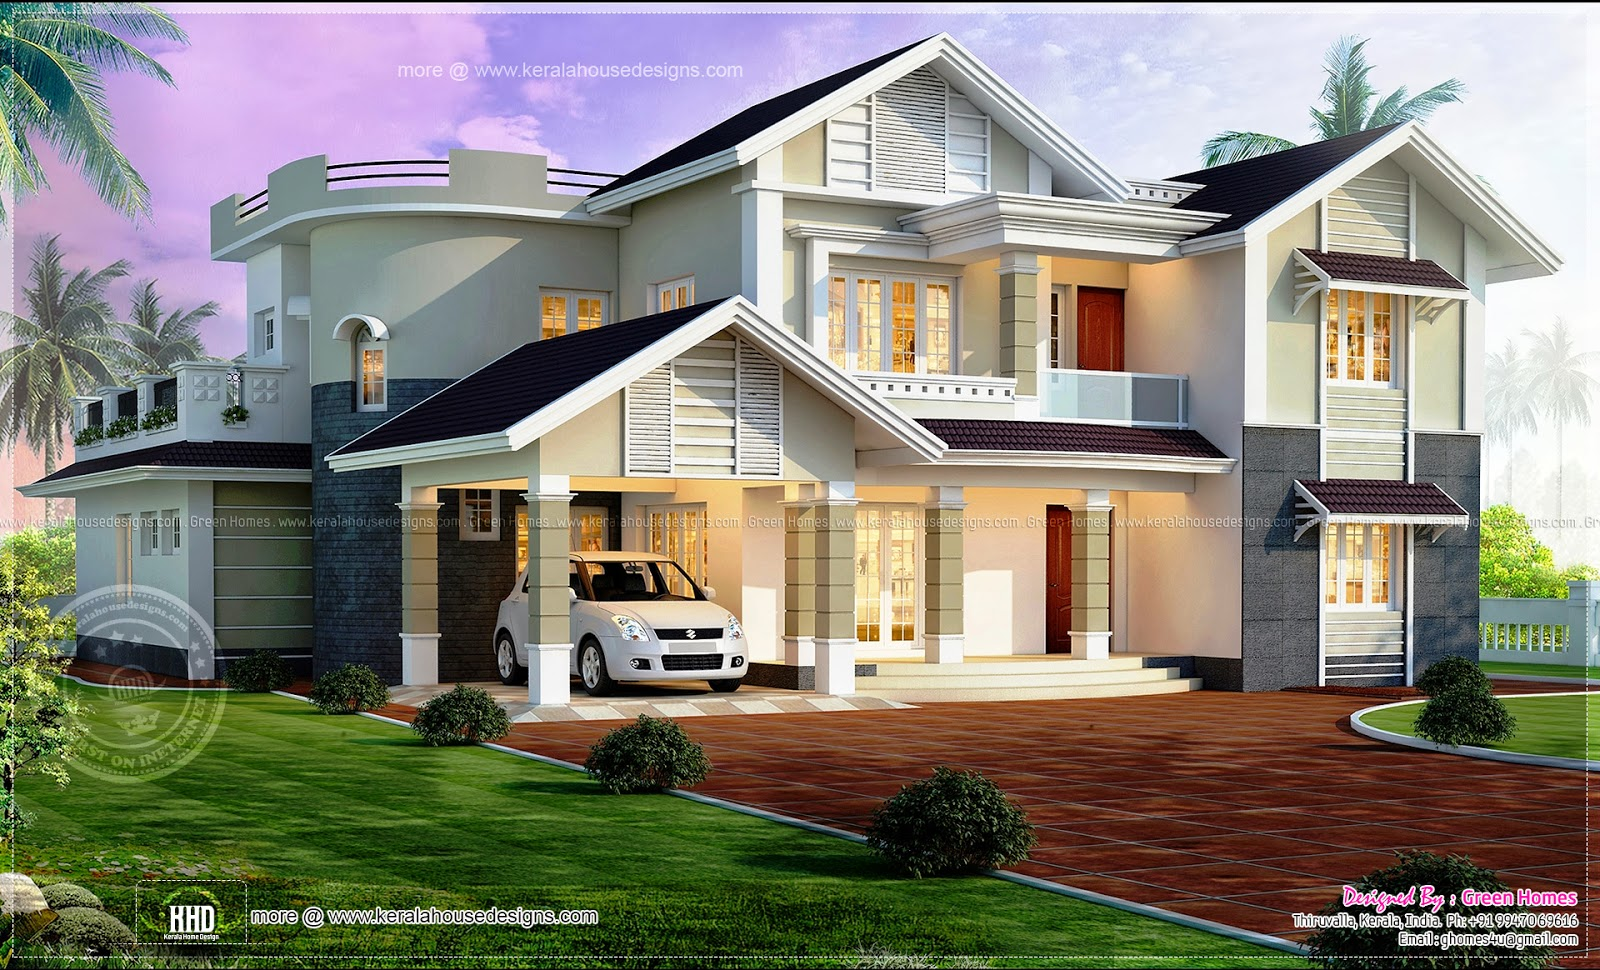 Beautiful 4 Bedroom House Exterior Elevation Kerala Home Design And Floor Plans